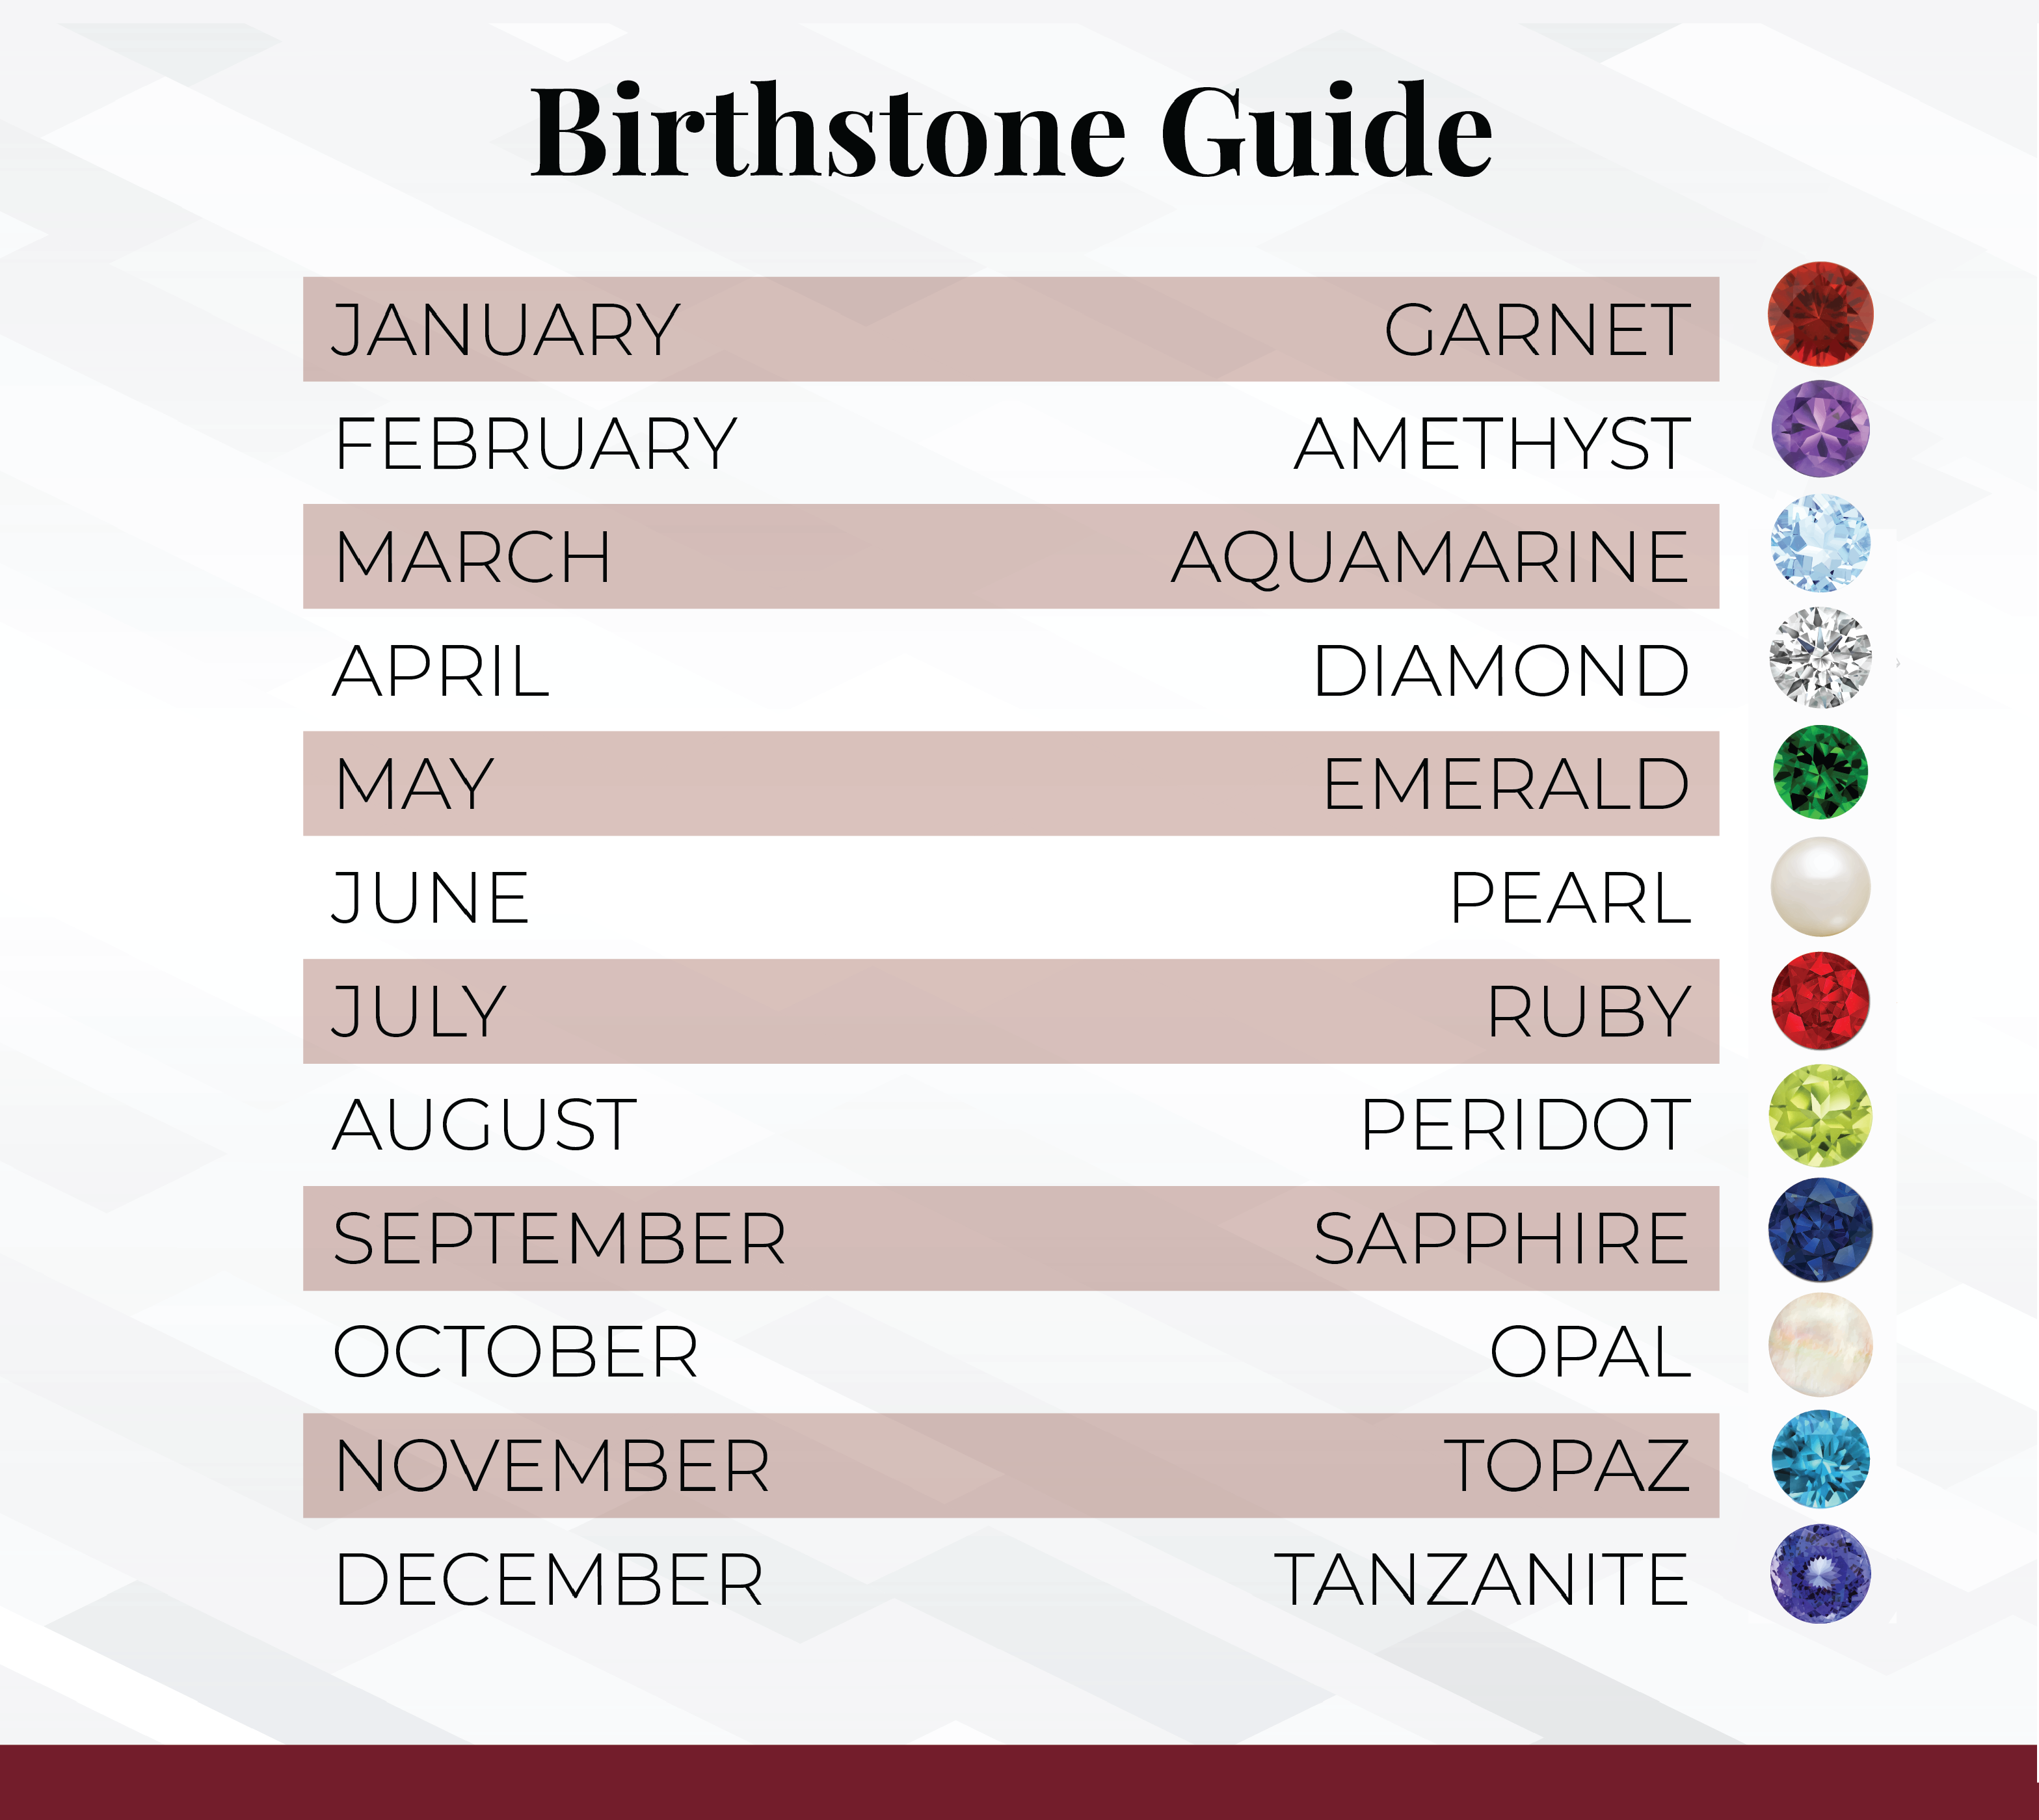 Table showing the birthstones for each month.